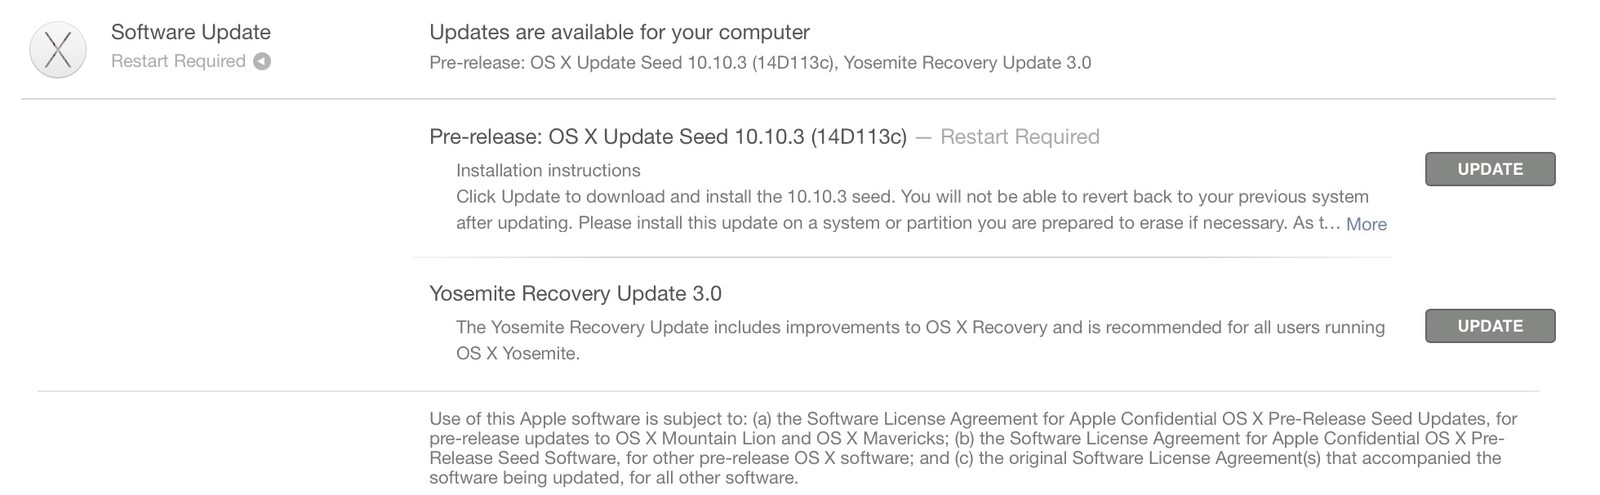 OS X 10.10.3 new seed